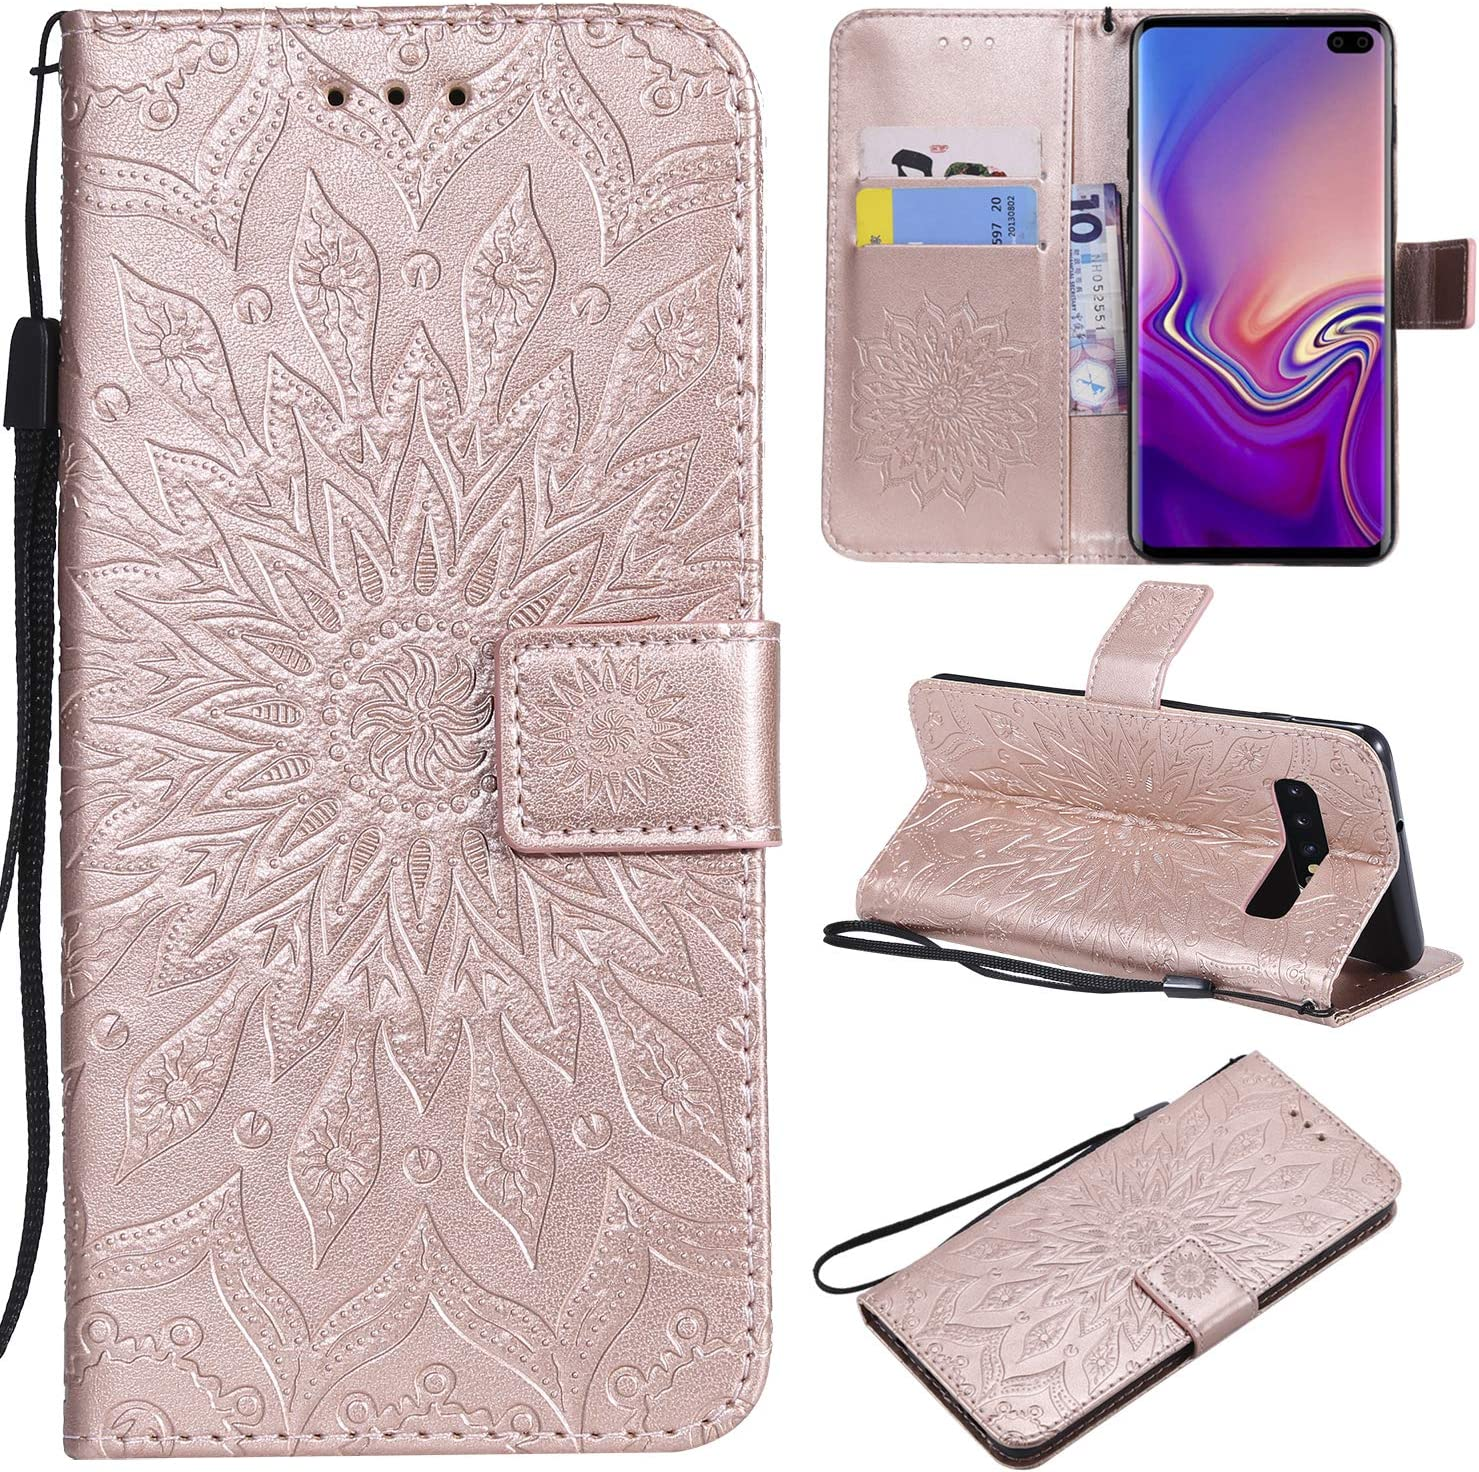 Cfrau Kickstand Wallet Many popular brands Case with for Black Galaxy Daily bargain sale Stylus Samsung